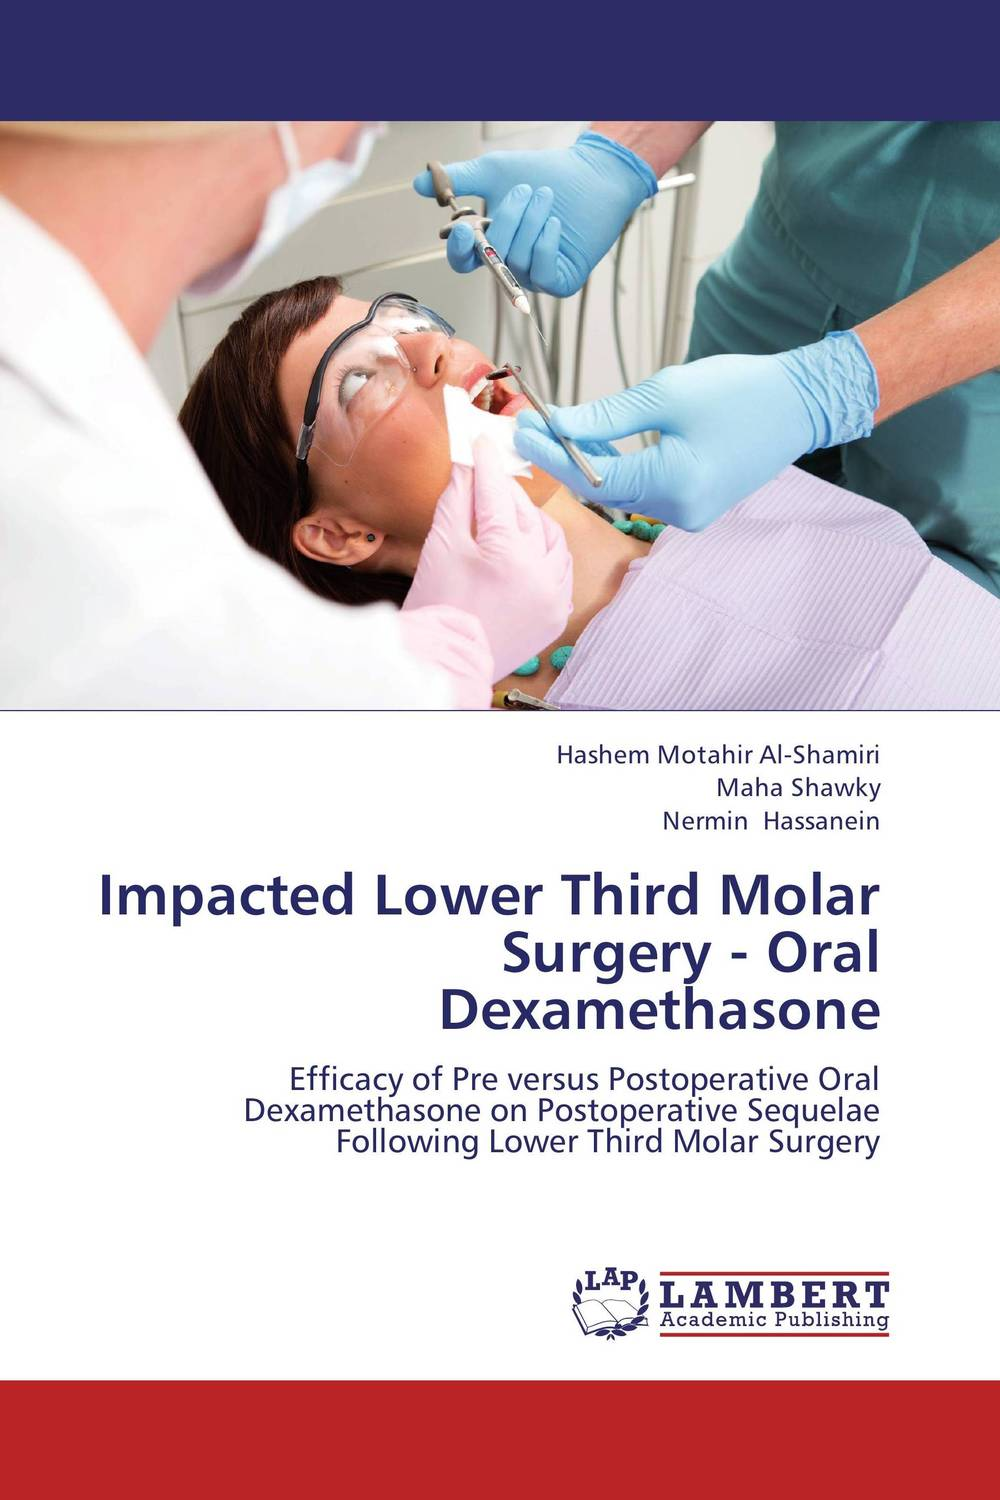 Impacted Lower Third Molar Surgery - Oral Dexamethasone cryosurgery in oral and maxillofacial surgery